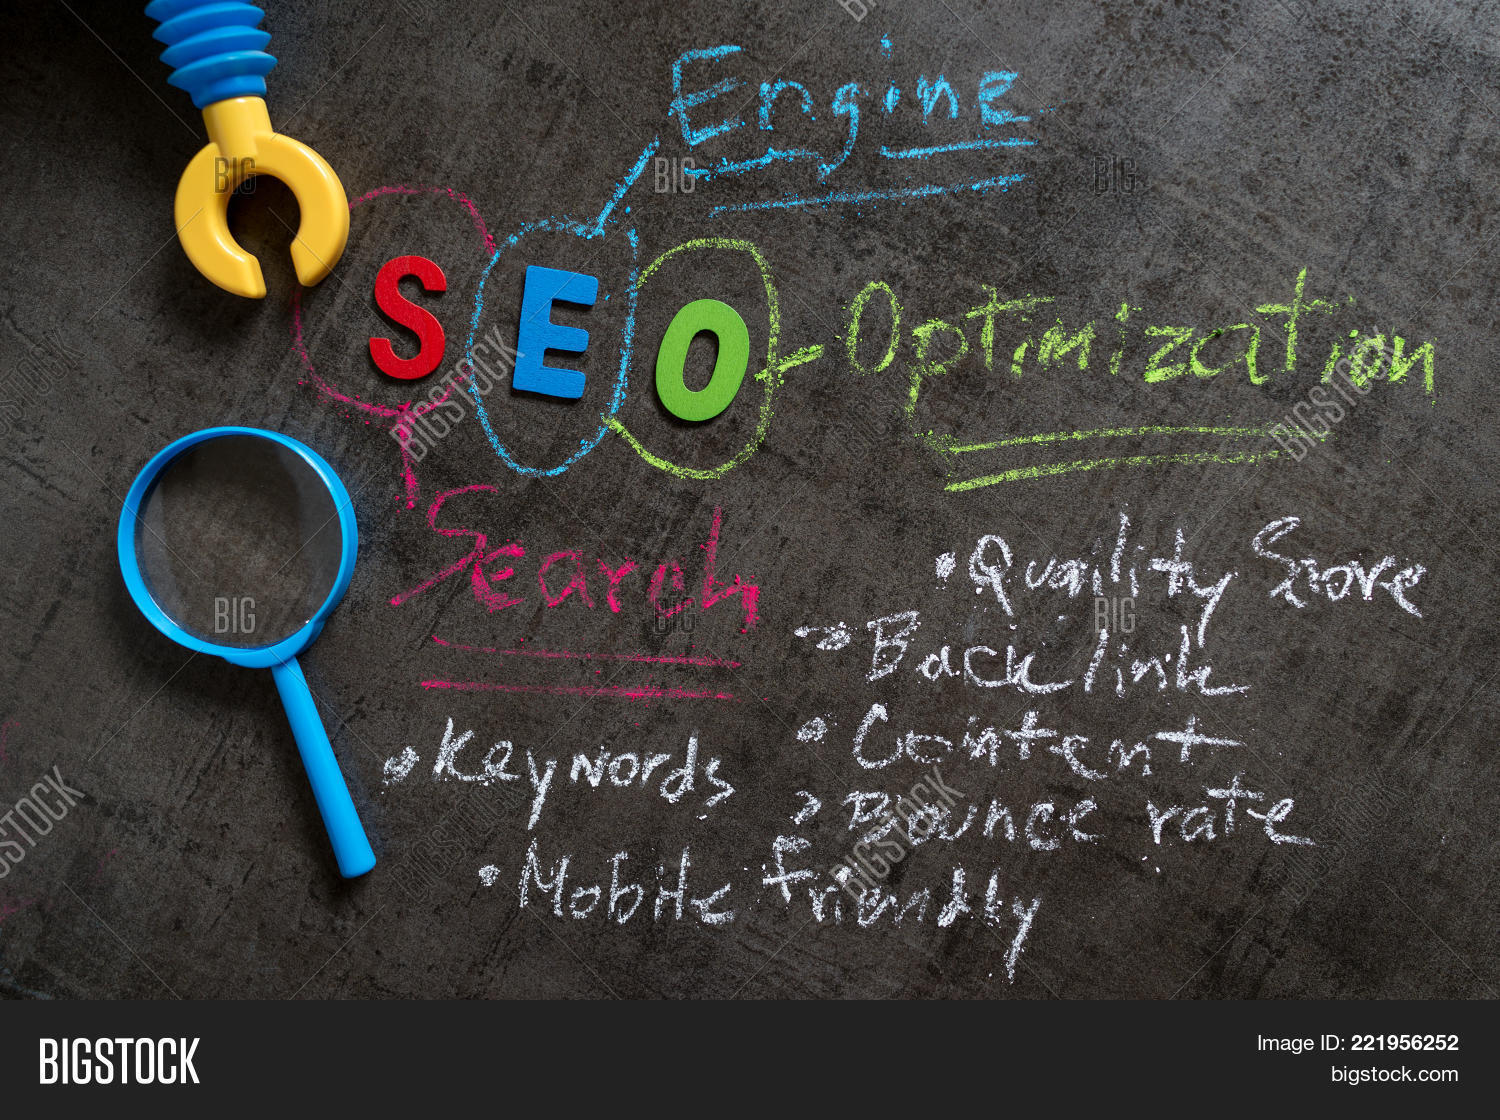 Seo Search Engine Image Photo Free Trial Bigstock